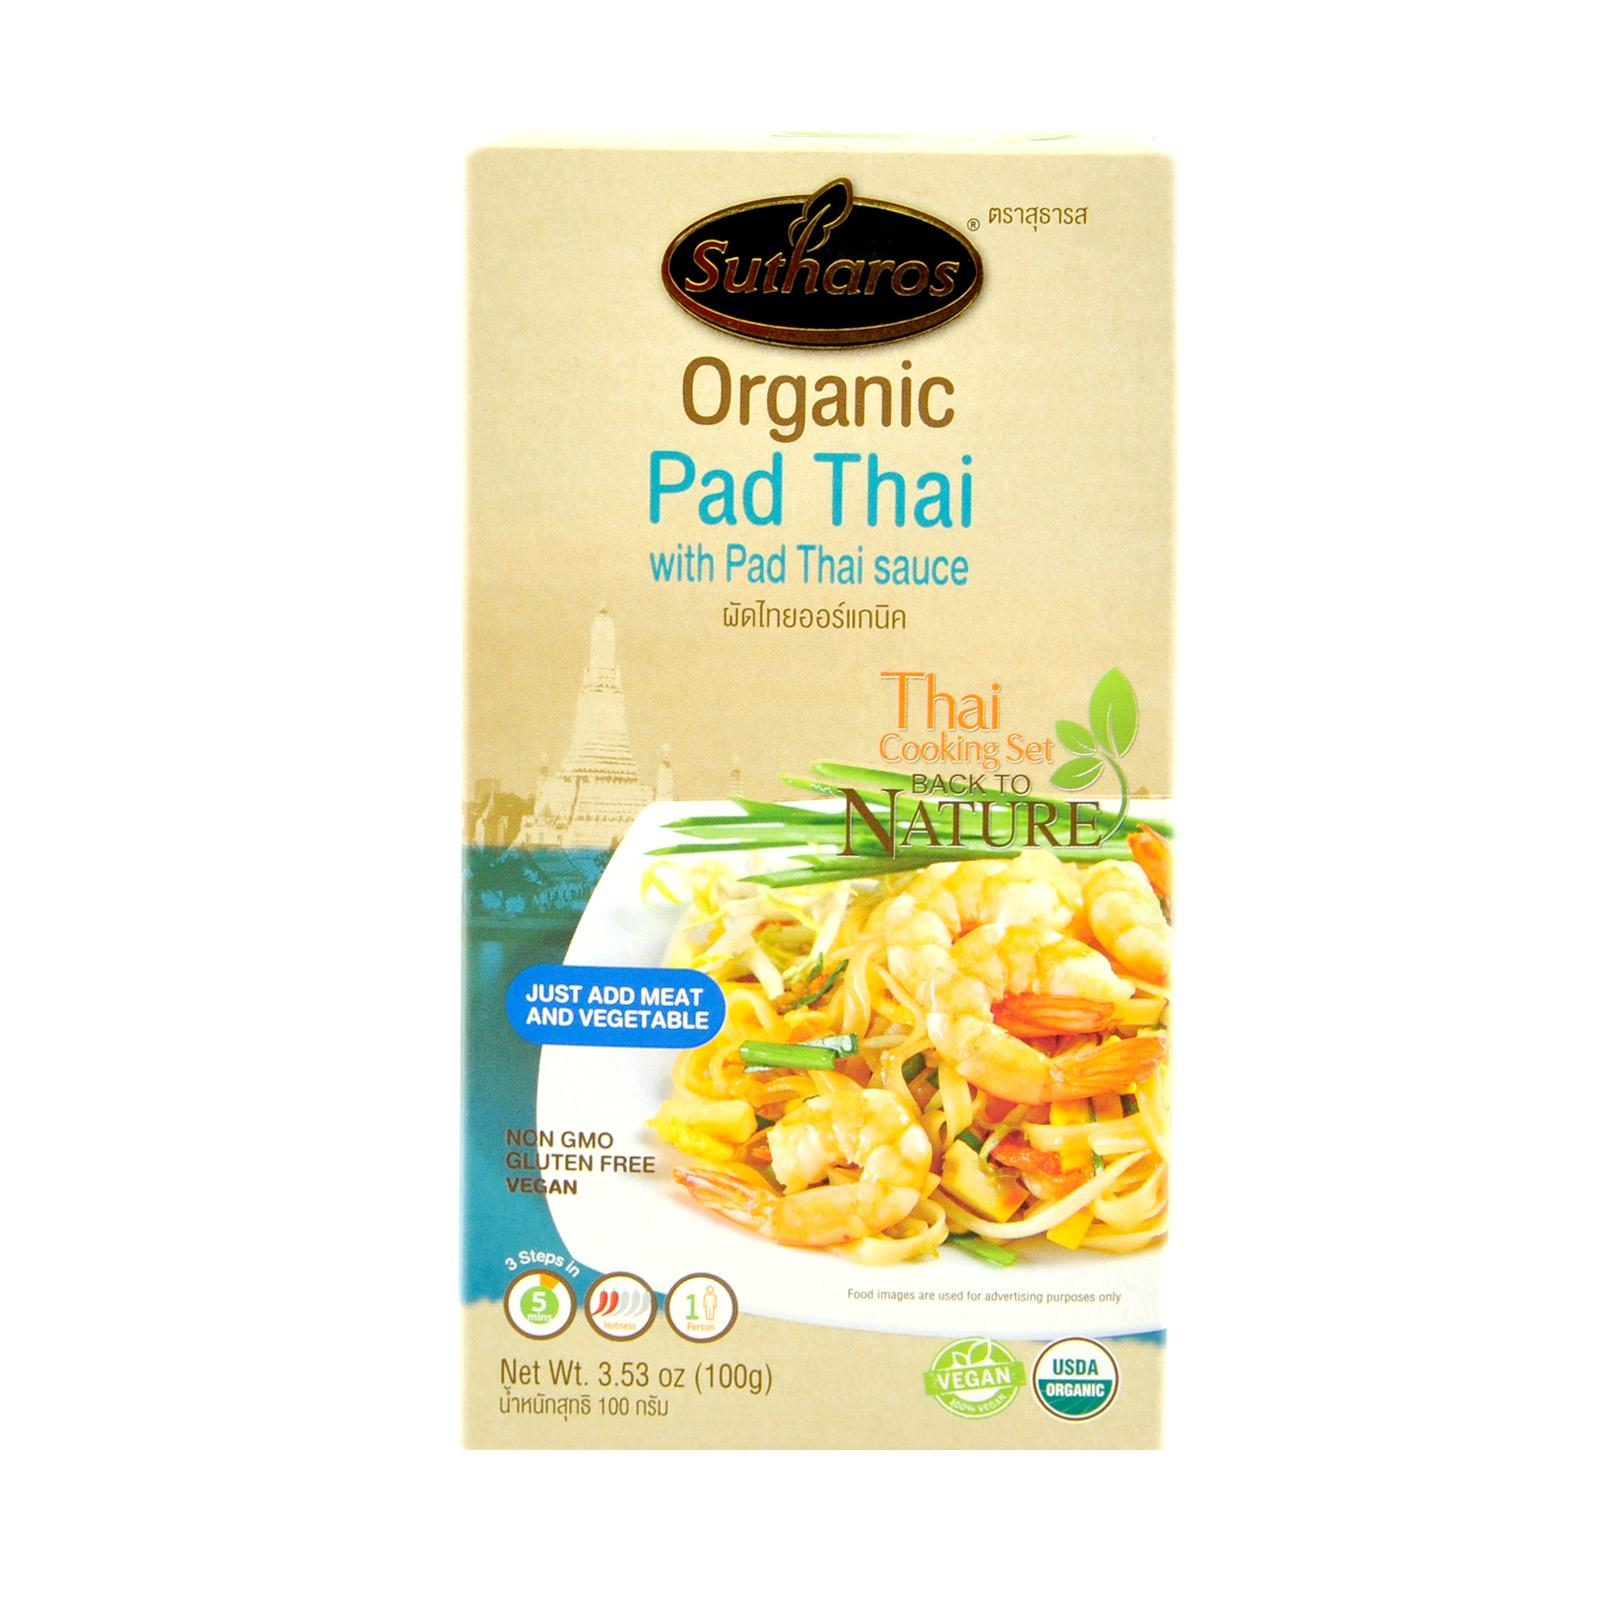 Sutharos Organic Pad Thai With Pad Thai Sauce (3 Boxes) By Lifewinners Organic & Fine Foods.